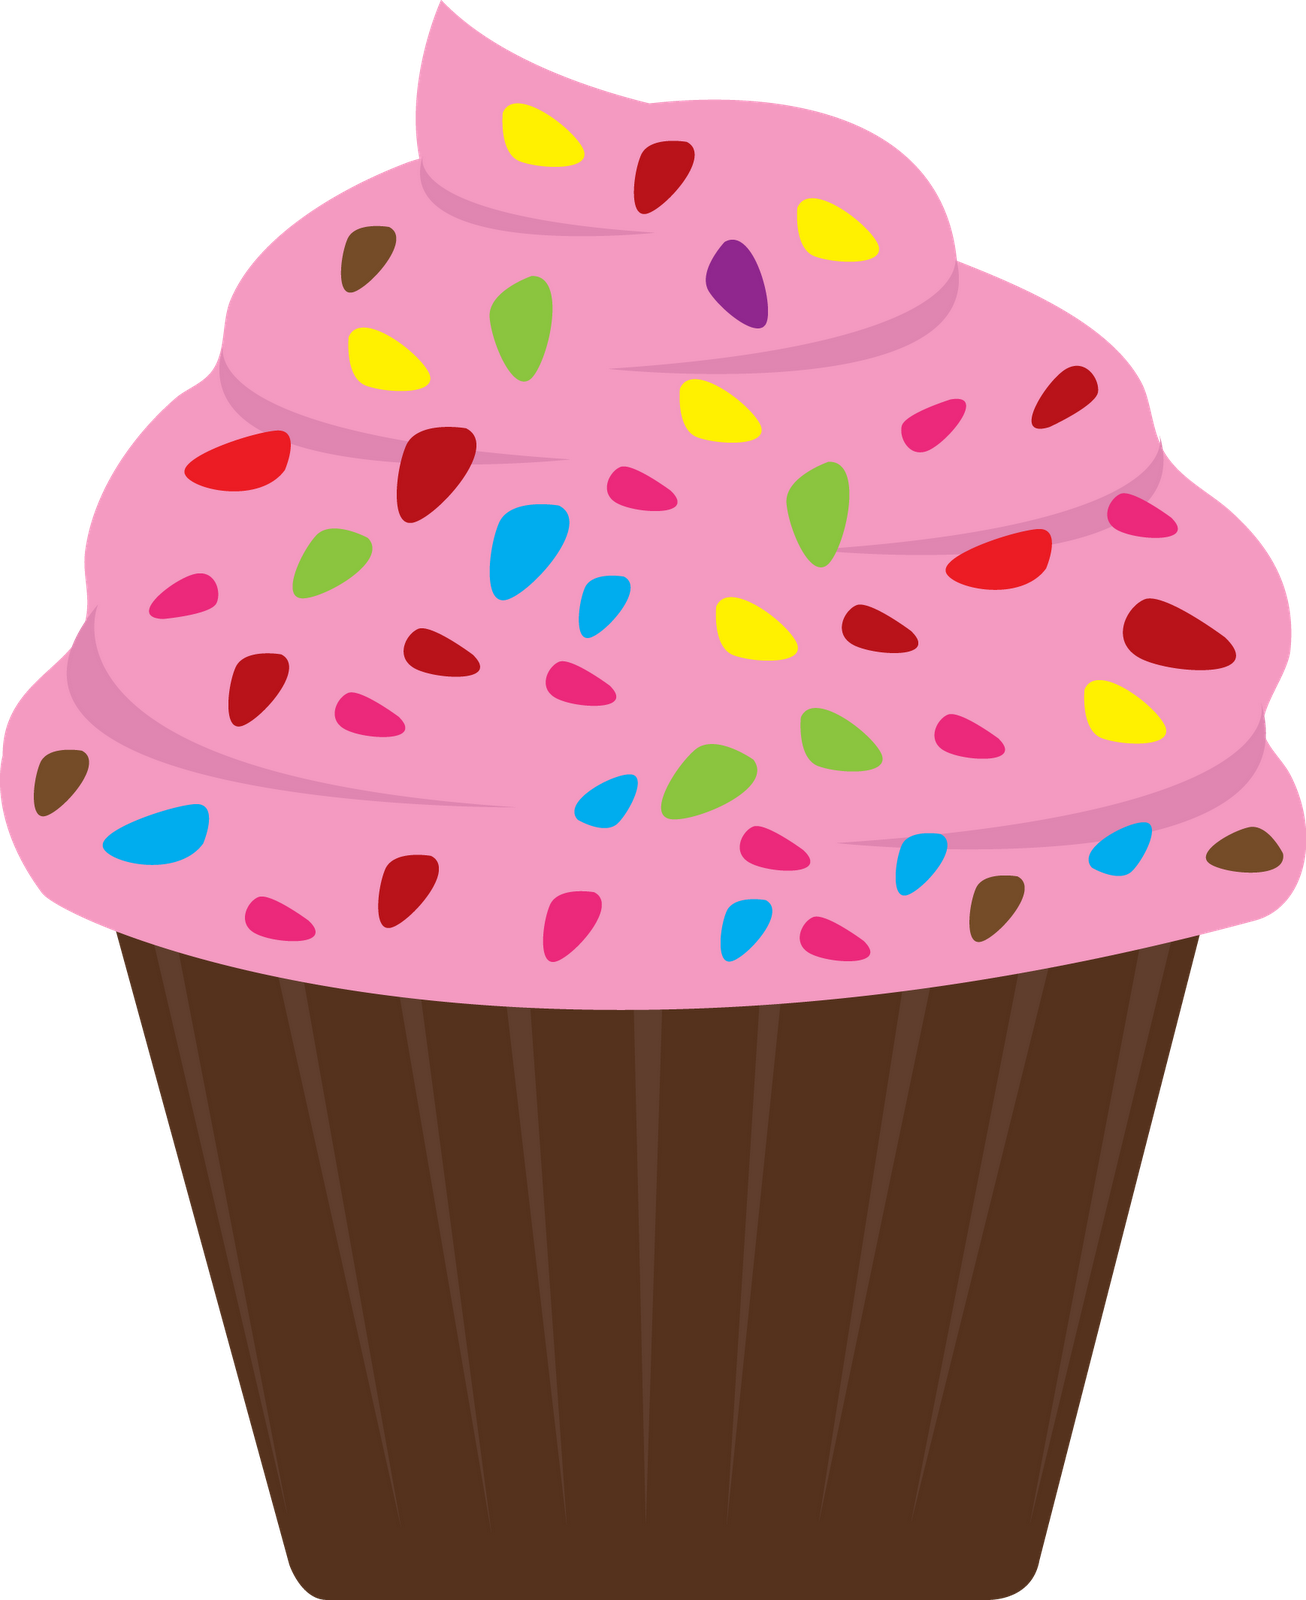 Muffins clipart giant cupcake.  collection of cupcakes